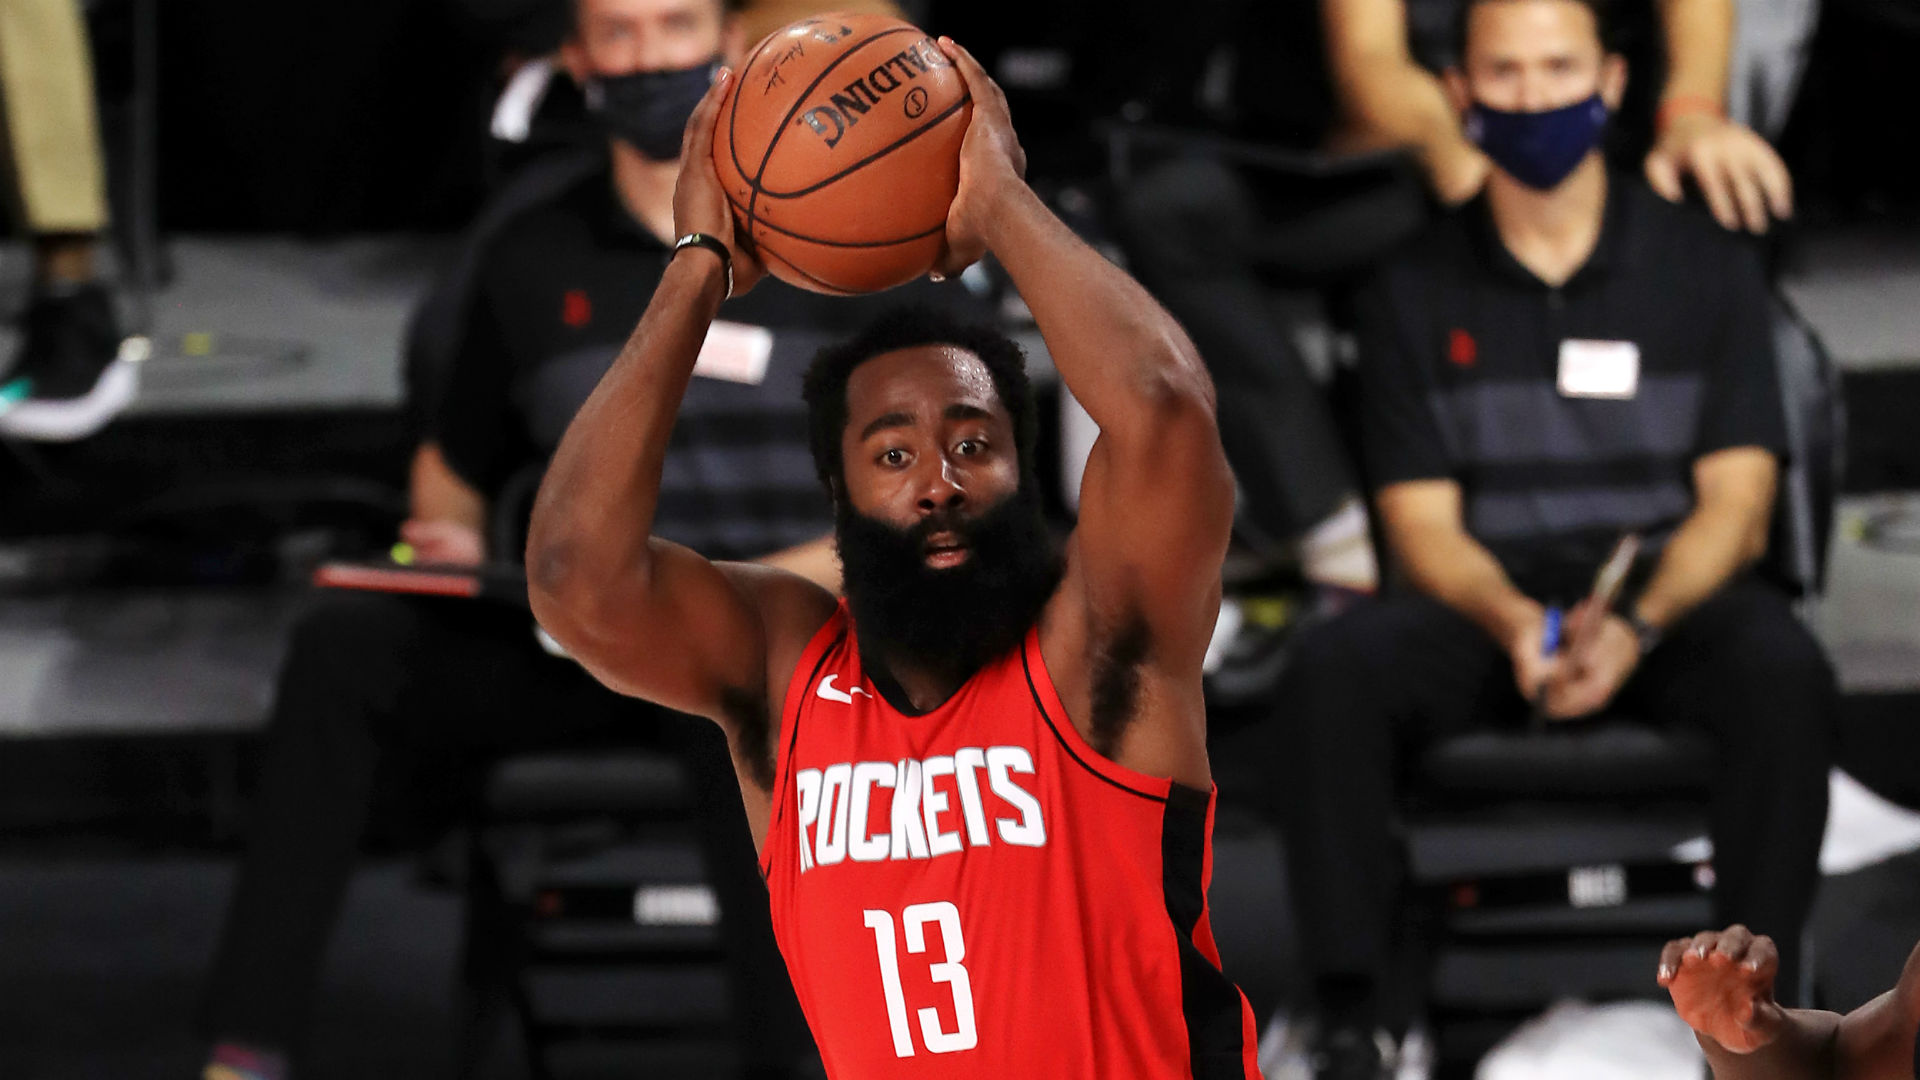 James Harden scores 49 in Rockets thriller over Mavs, but says 'it's not about the points'